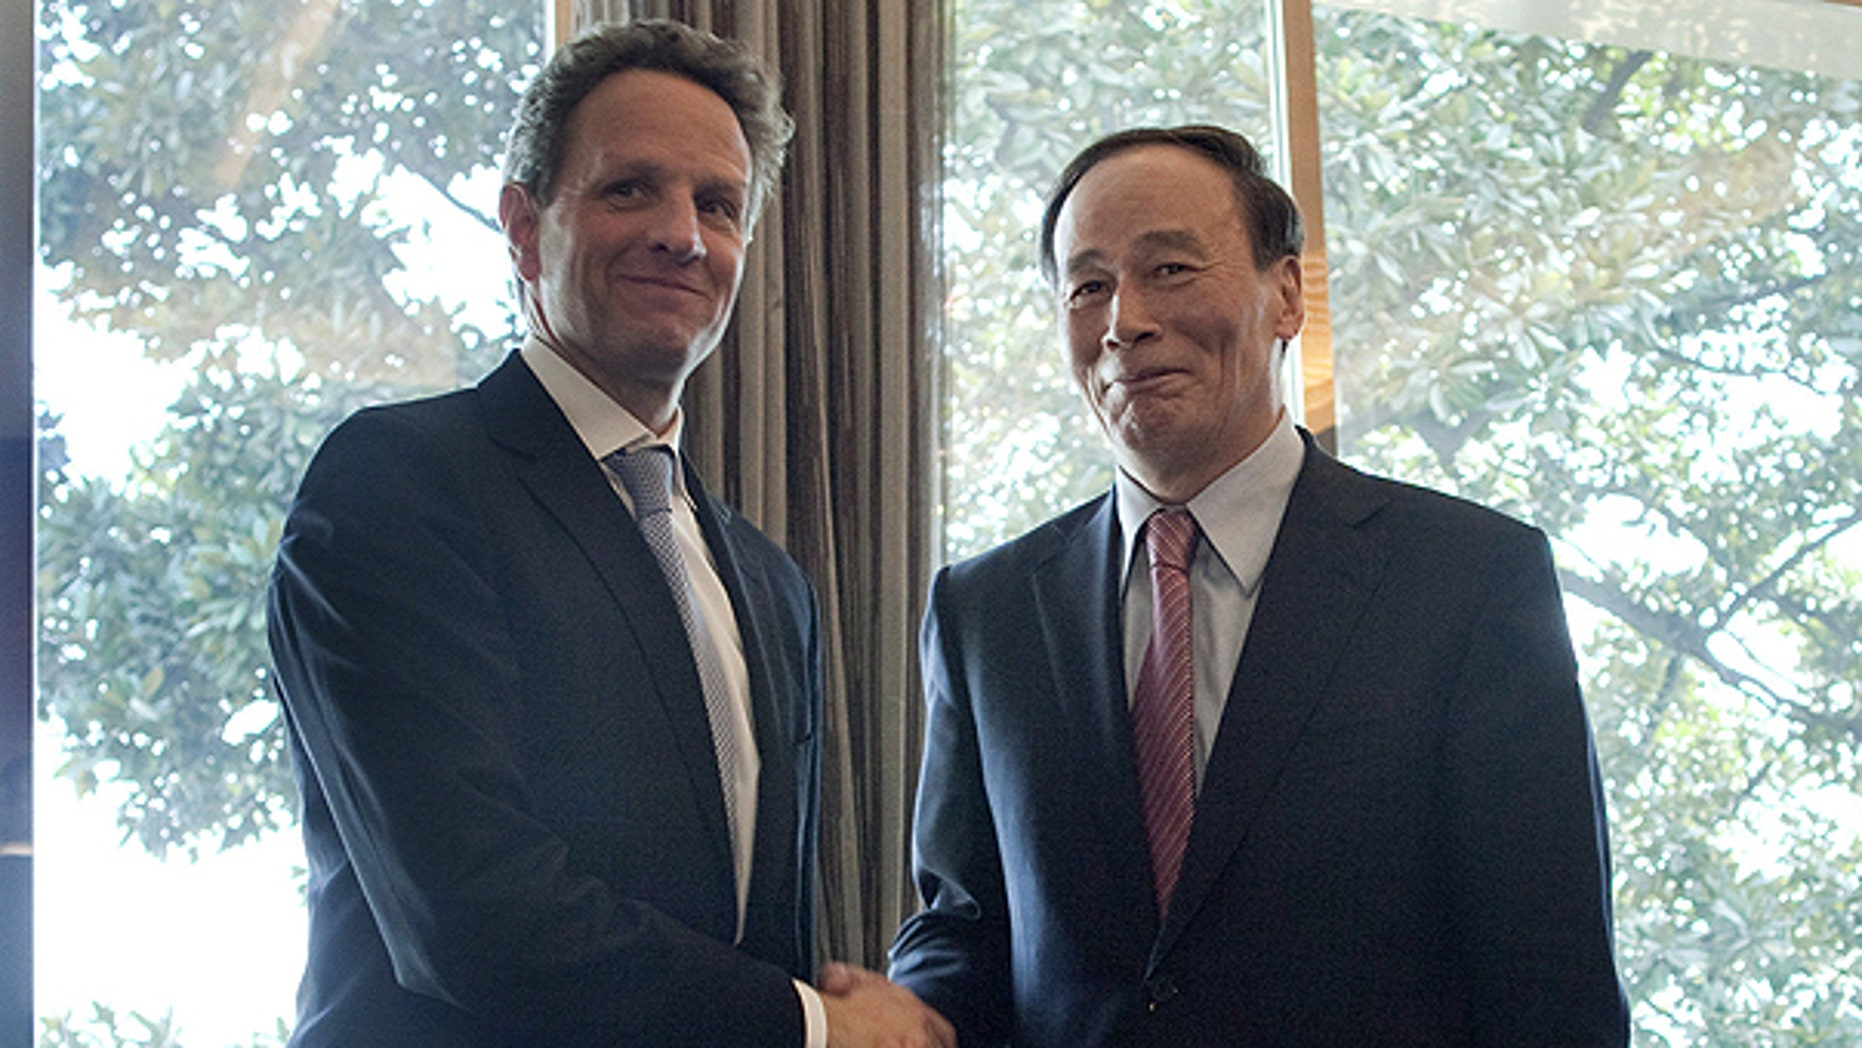 In this March 31, 2011, file photo U.S. Treasury Secretary Timothy Geithner, left, shakes hands with Chinese Vice Premier Wang Qishan prior to having lunch on the sidelines of the G-20 High Level Seminar on the international monetary system in Nanjing, China.